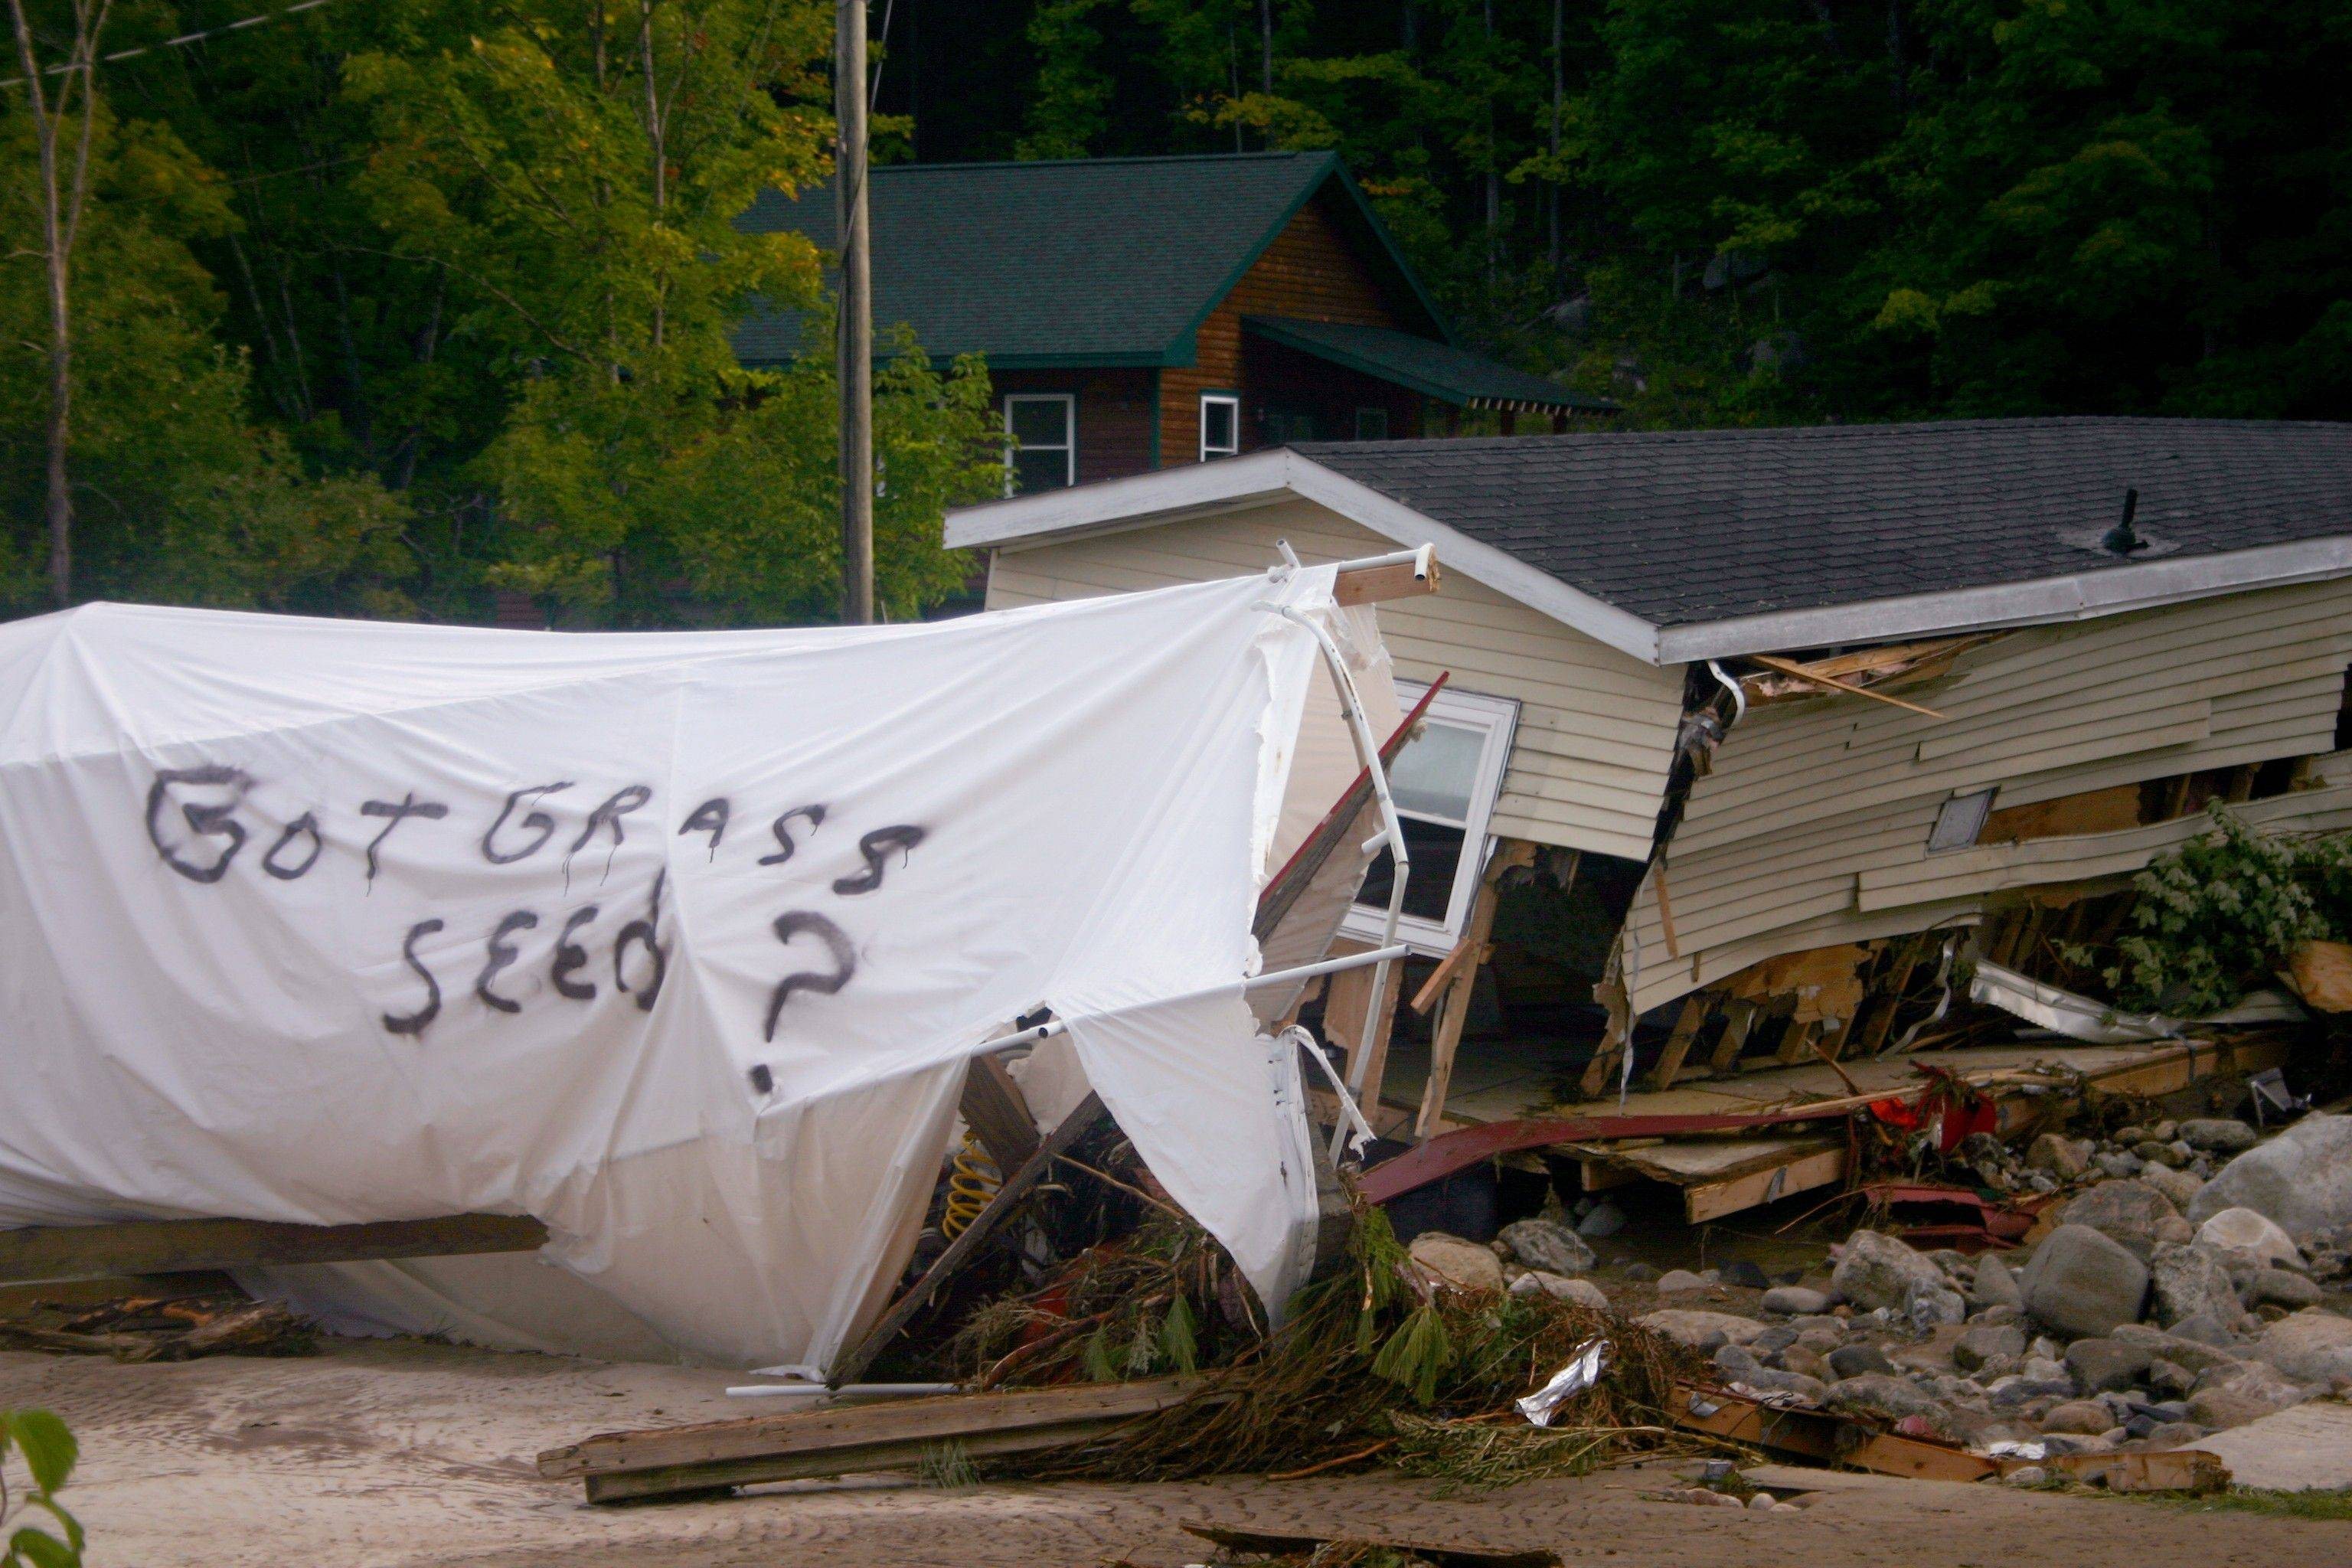 Flood waters in Keene, NY destroyed this mobile home Tuesday. Mountain communities scoured by cascades of rain and other towns swamped by rising streams and rivers continue to clean up and tally the damage two days after Tropical Storm Irene.